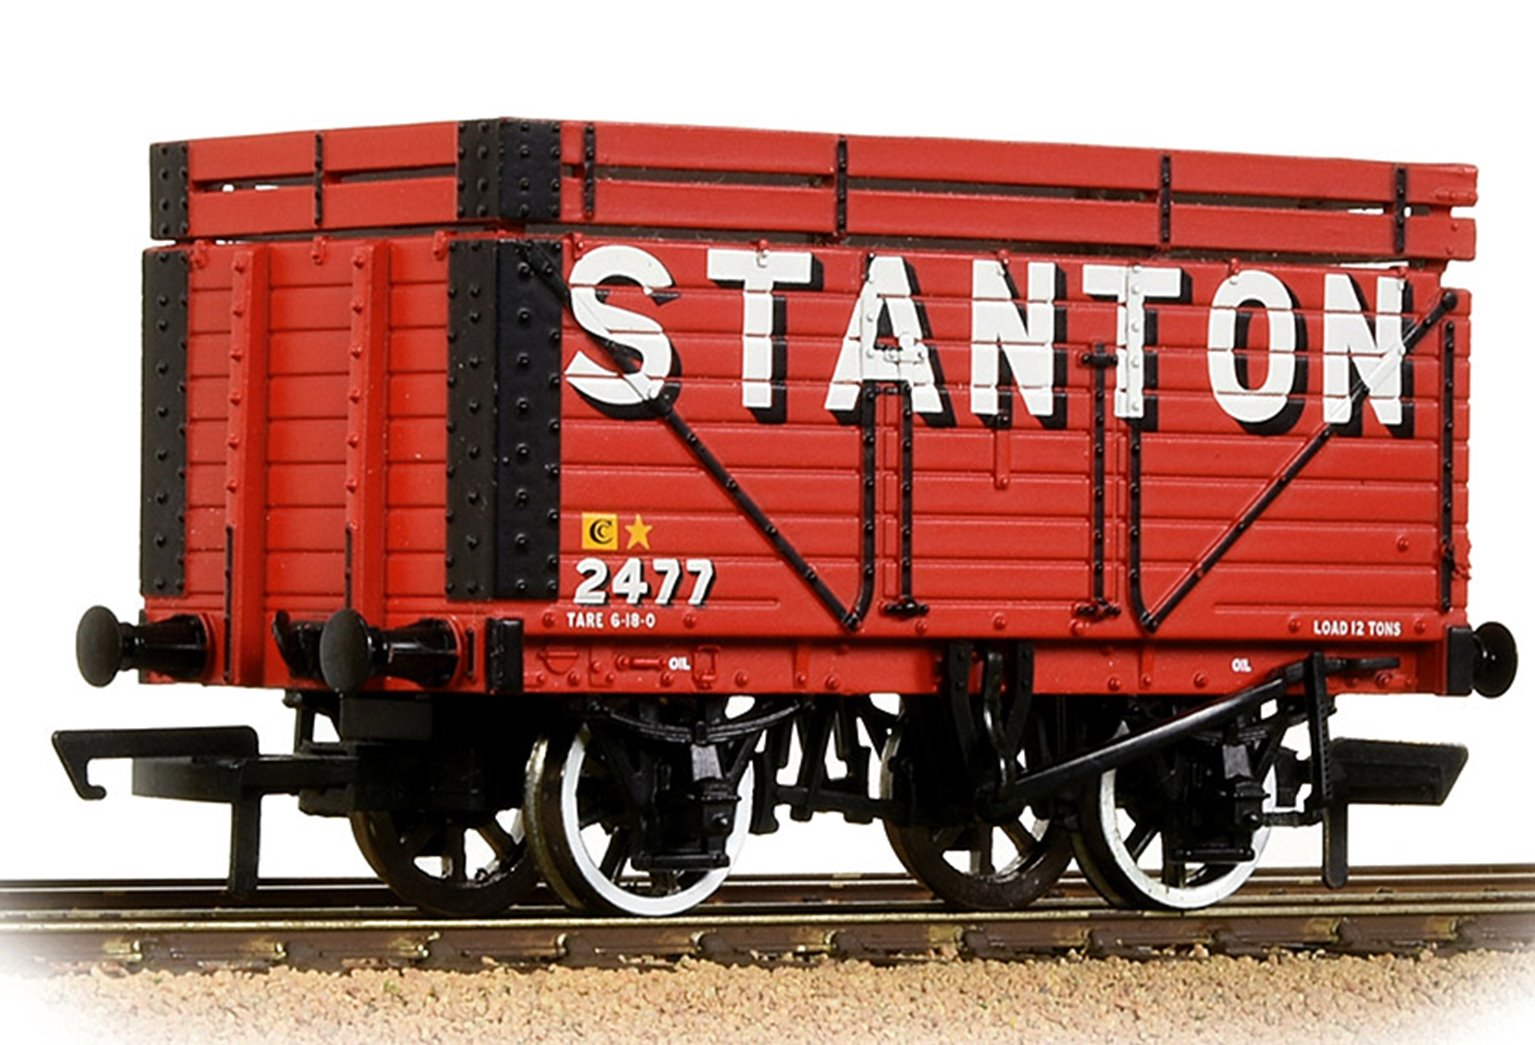 8 Plank Wagon Coke Rails 'Stanton' Red